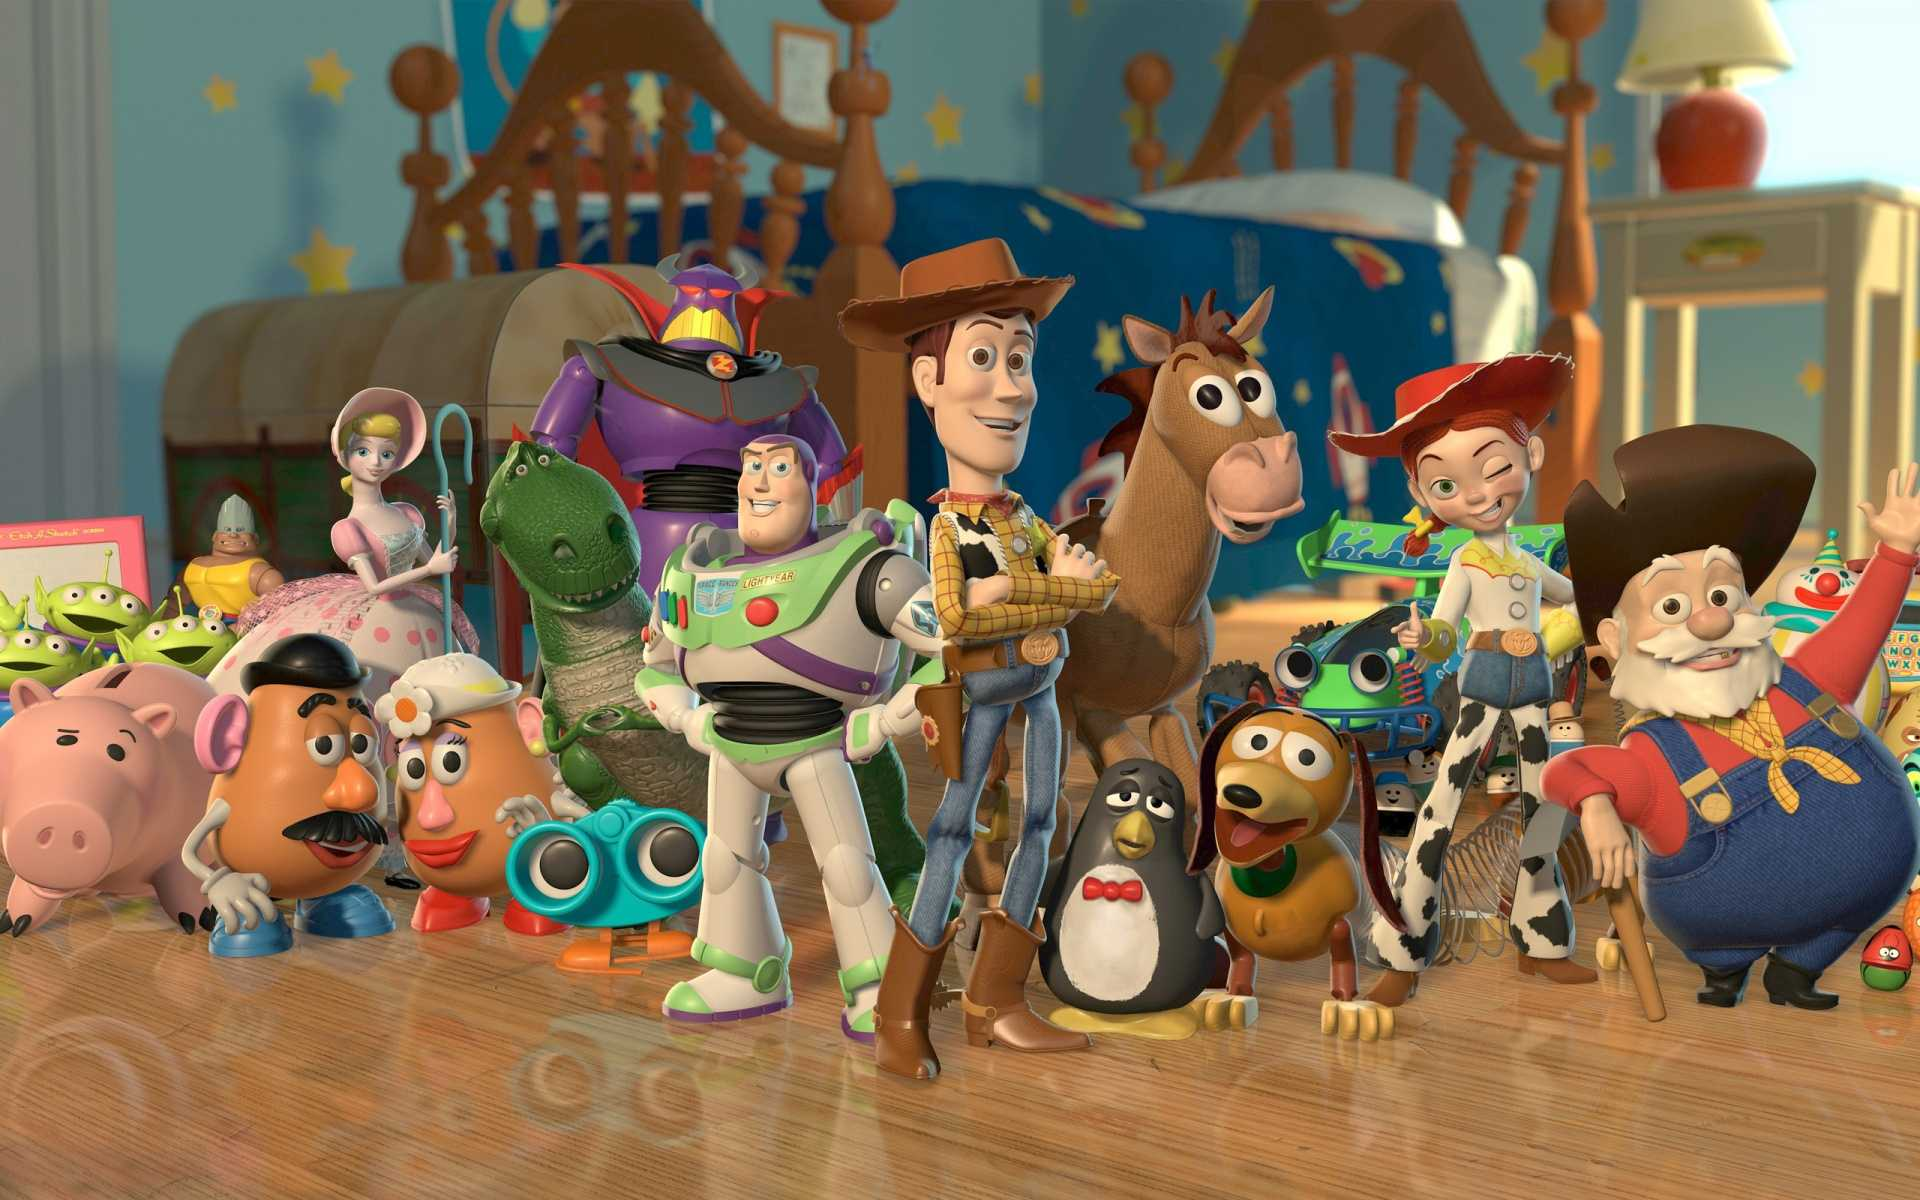 Toy Story 4 hits theaters in 2017